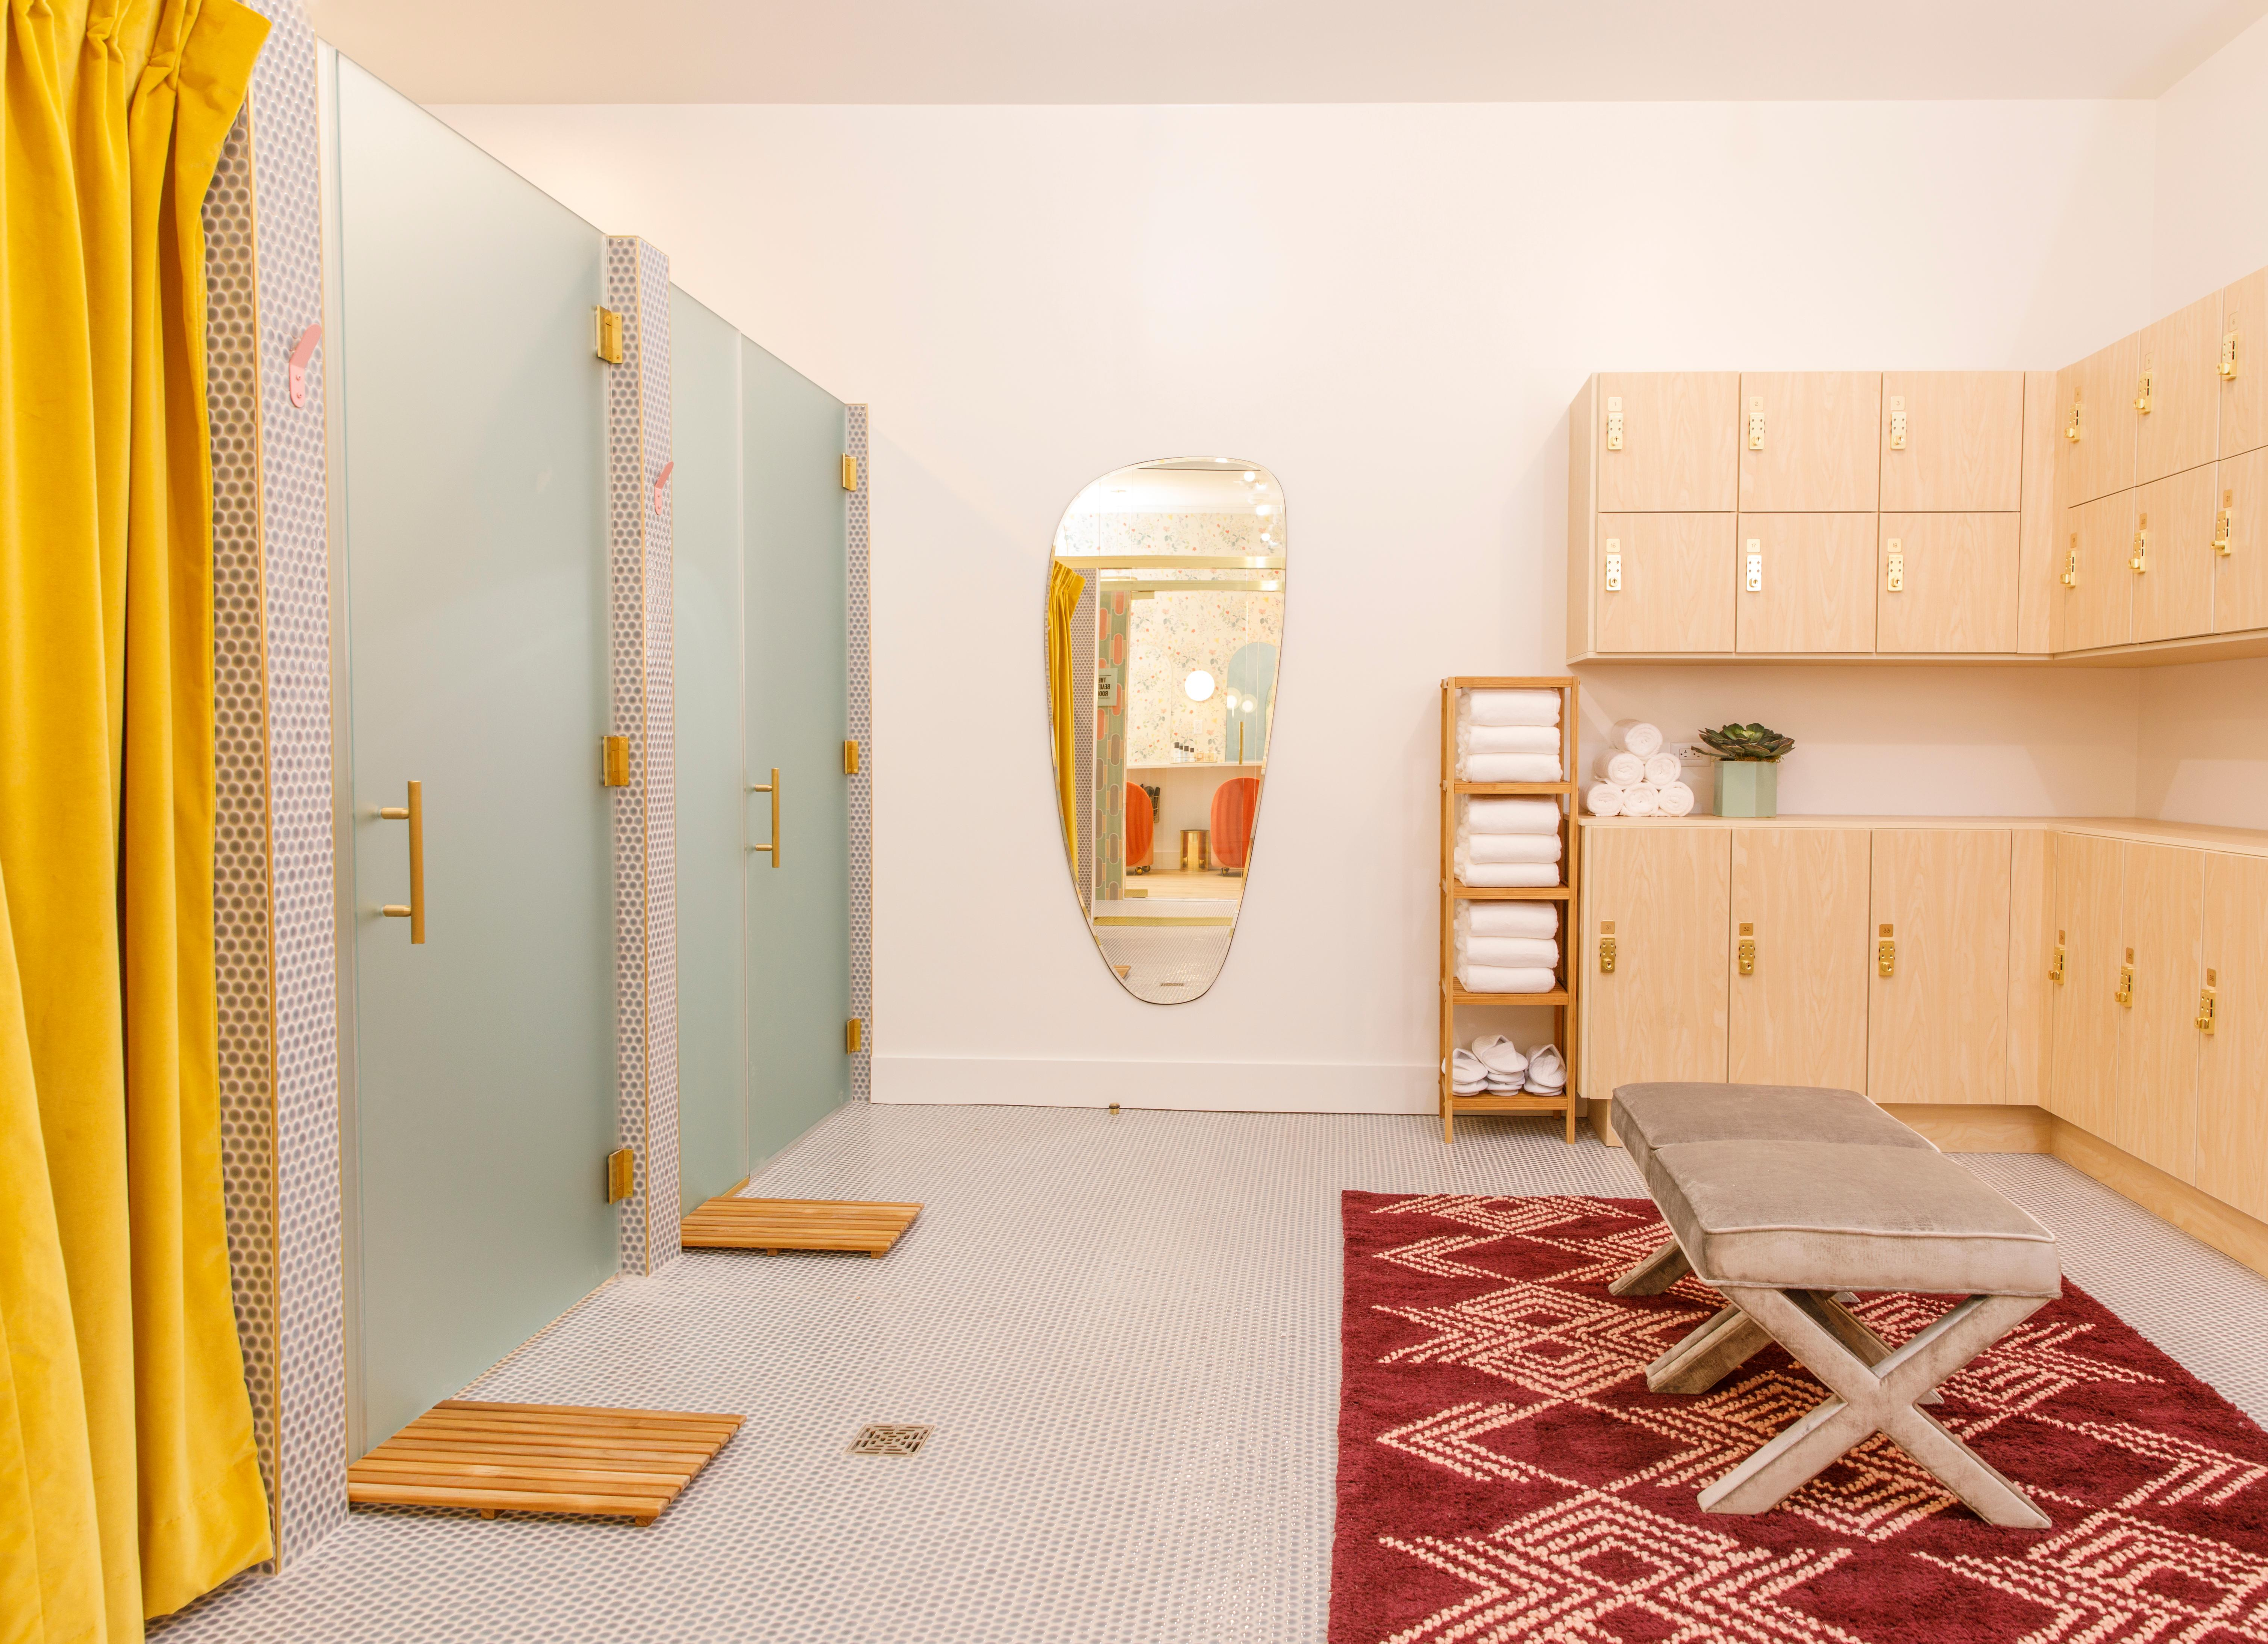 The small locker room, including two showers and a lactation room for new mothers, allows Wing members a space to get ready for big meetings or post-work activities. (Image: Courtesy The Wing)